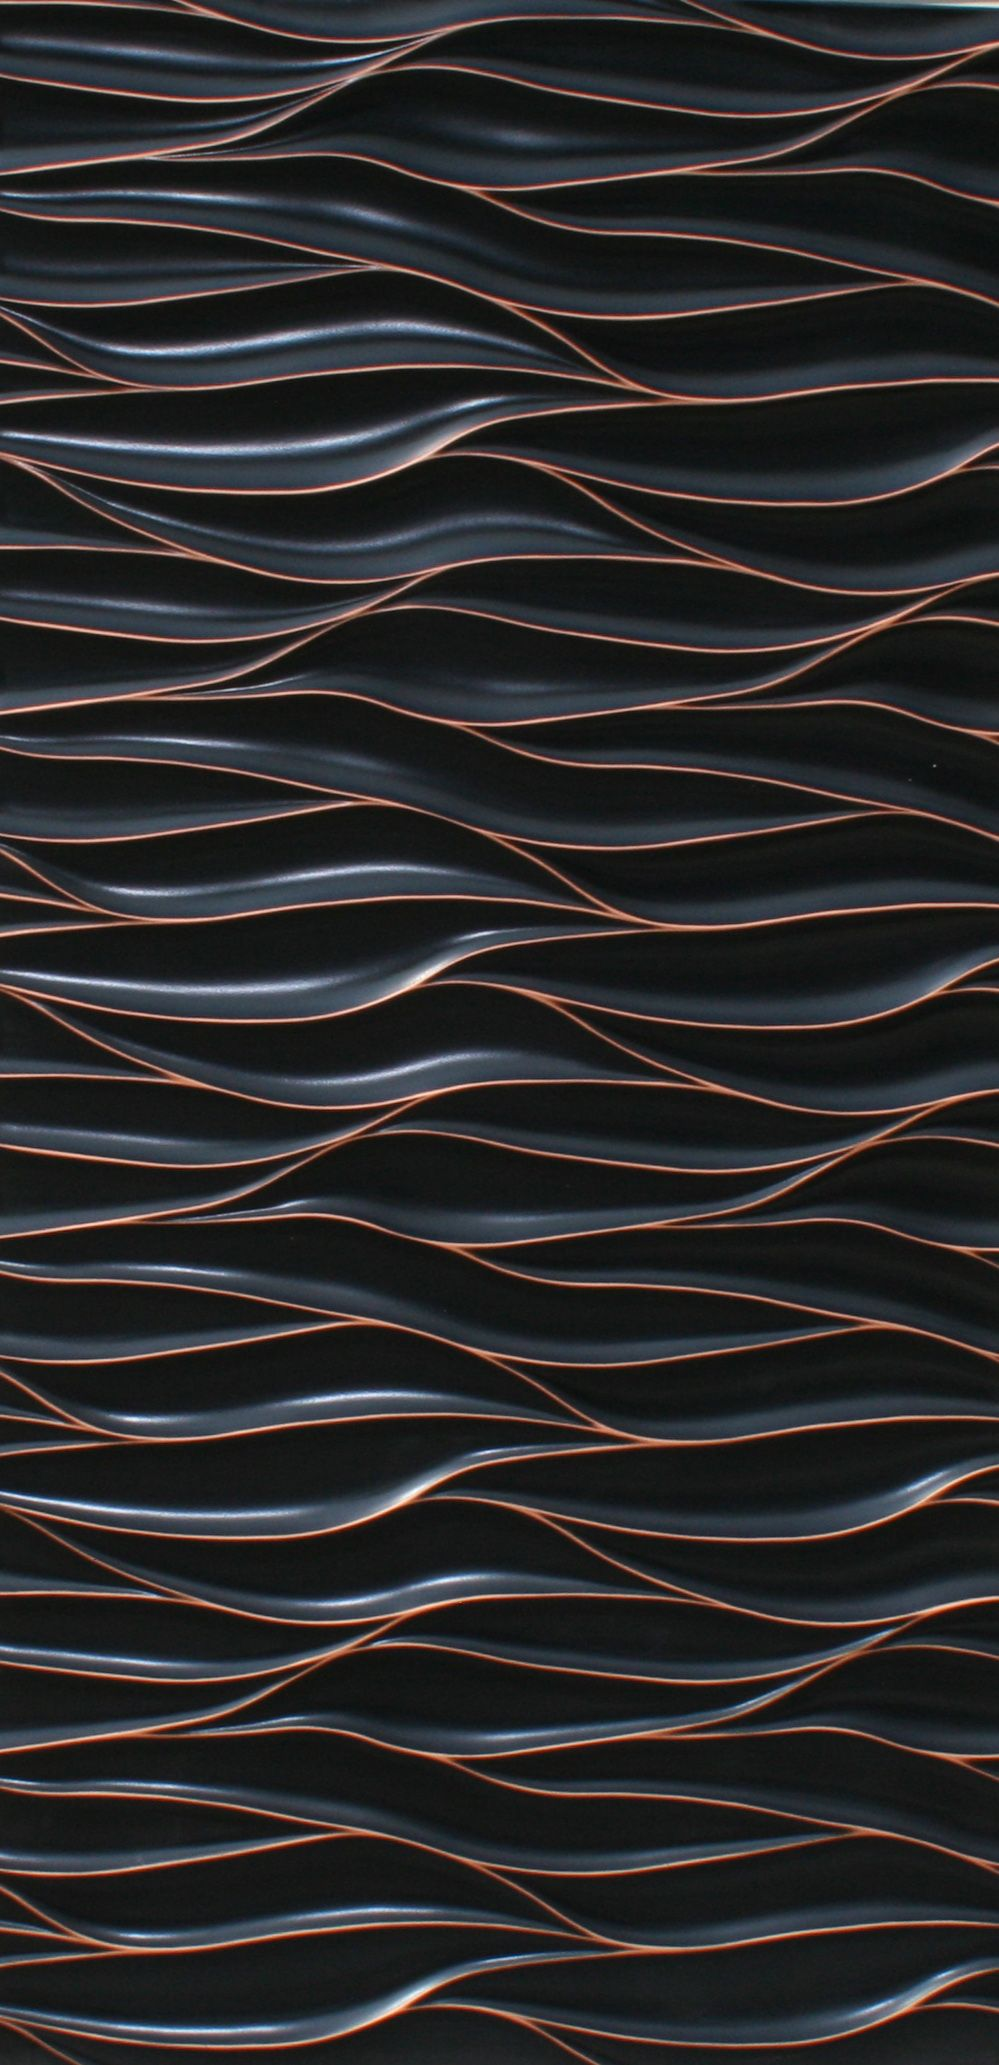 Line Texture Wall : Textured wall bio from interlam styles